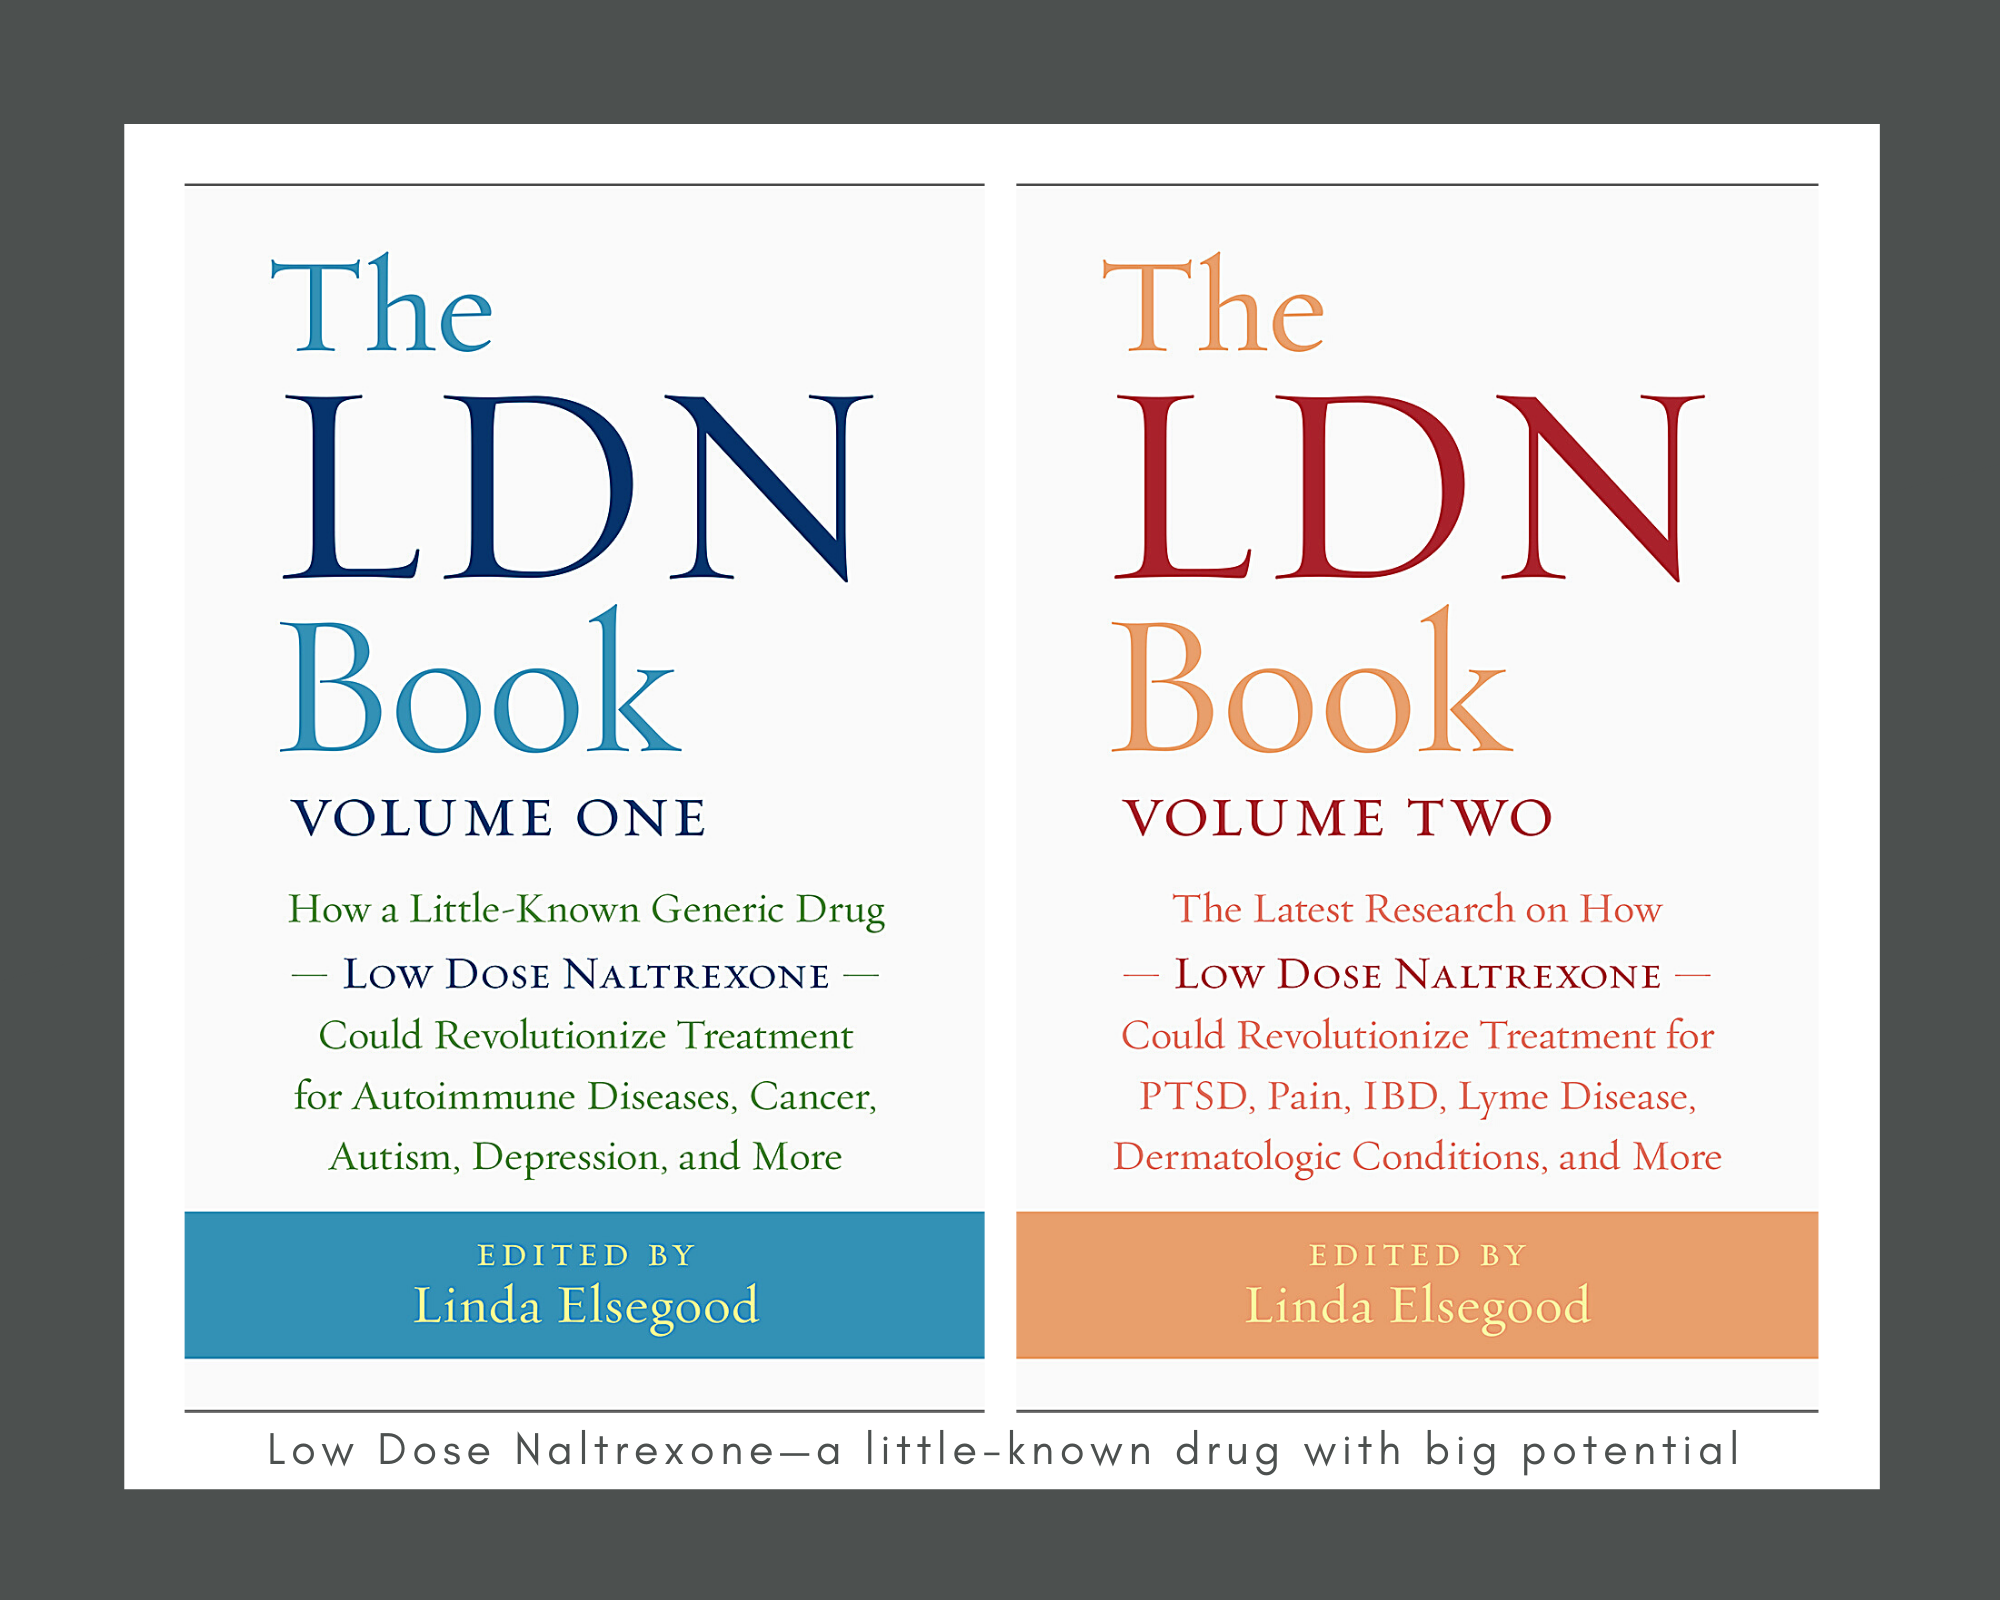 LDN Books, Volumes 1 and 2 | Roseway Labs